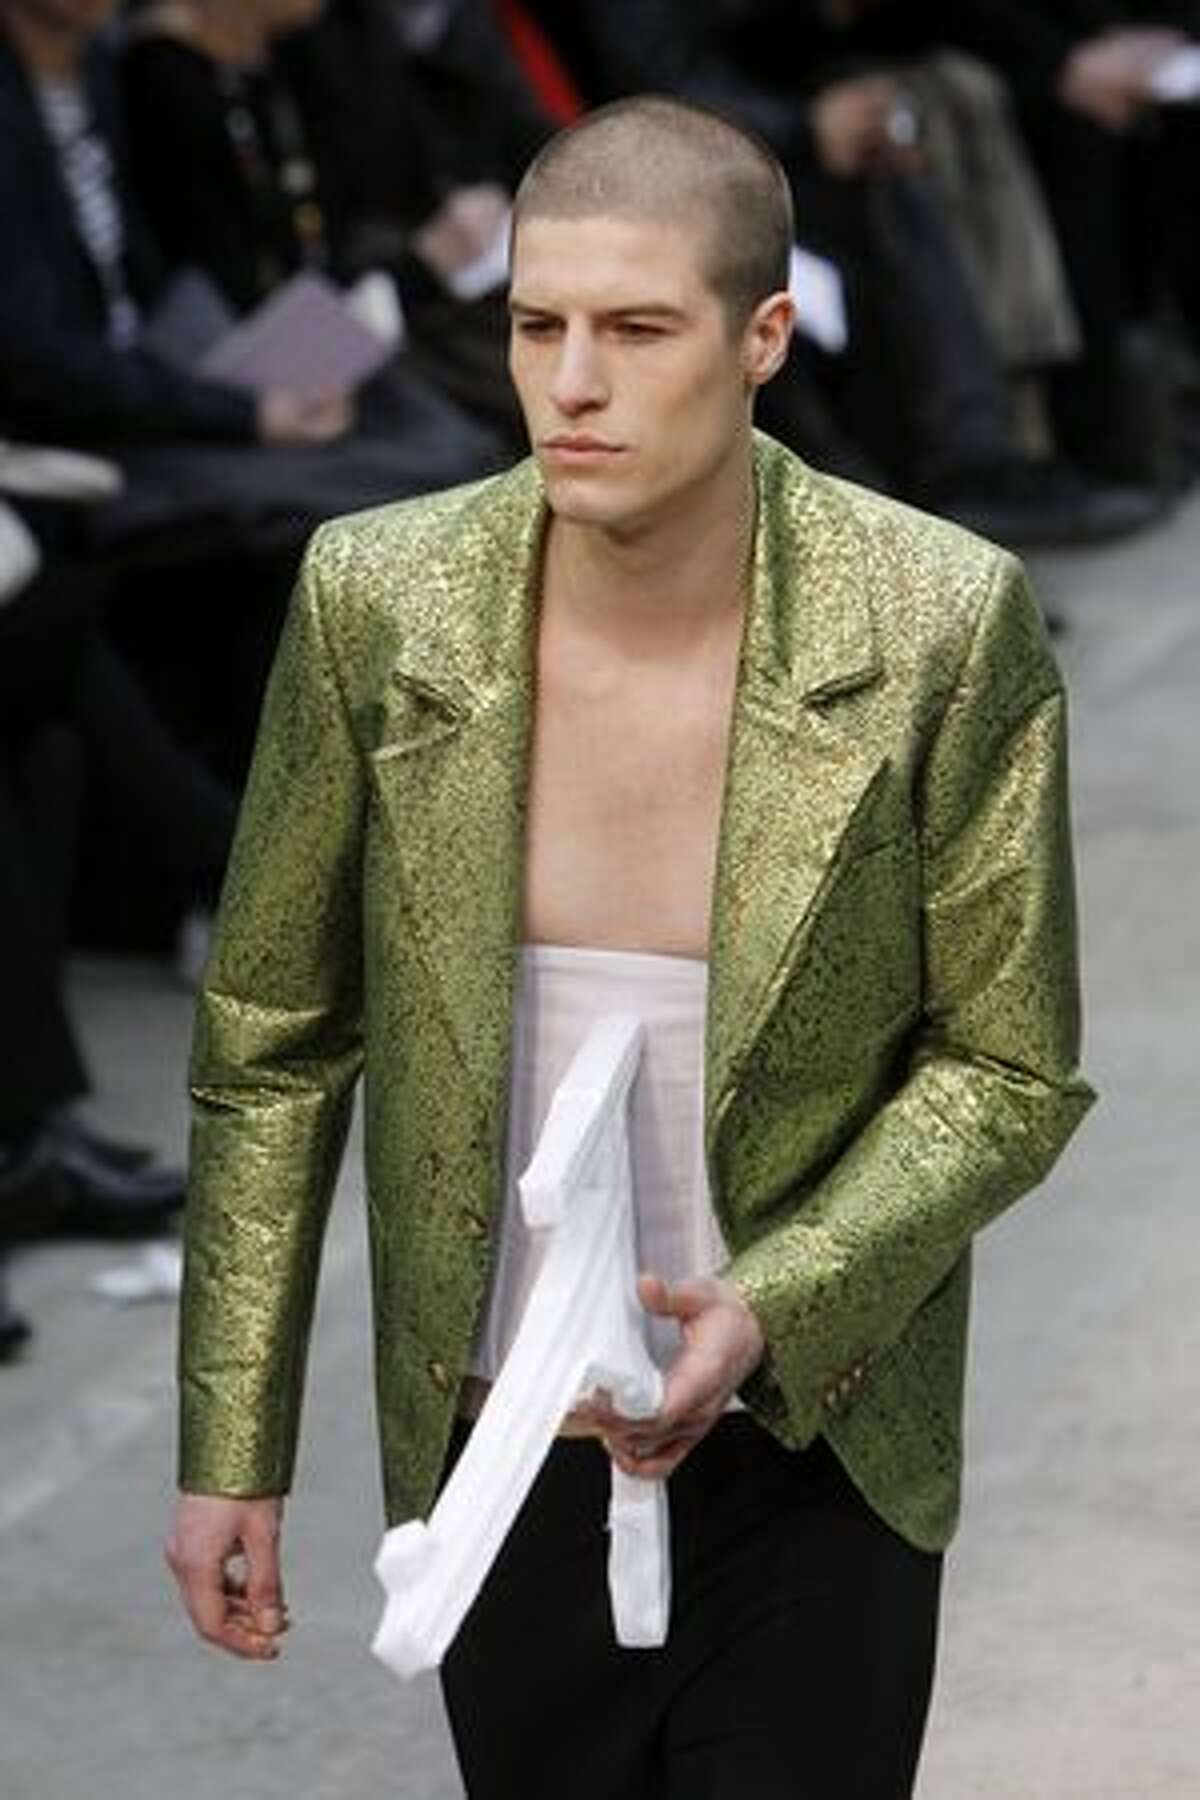 A model presents a creation by Belgian designer Walter Van Beirendonck during the Autumn/Winter's 2010-2011 ready-to-wear (French PAP) men's collection show in Paris.